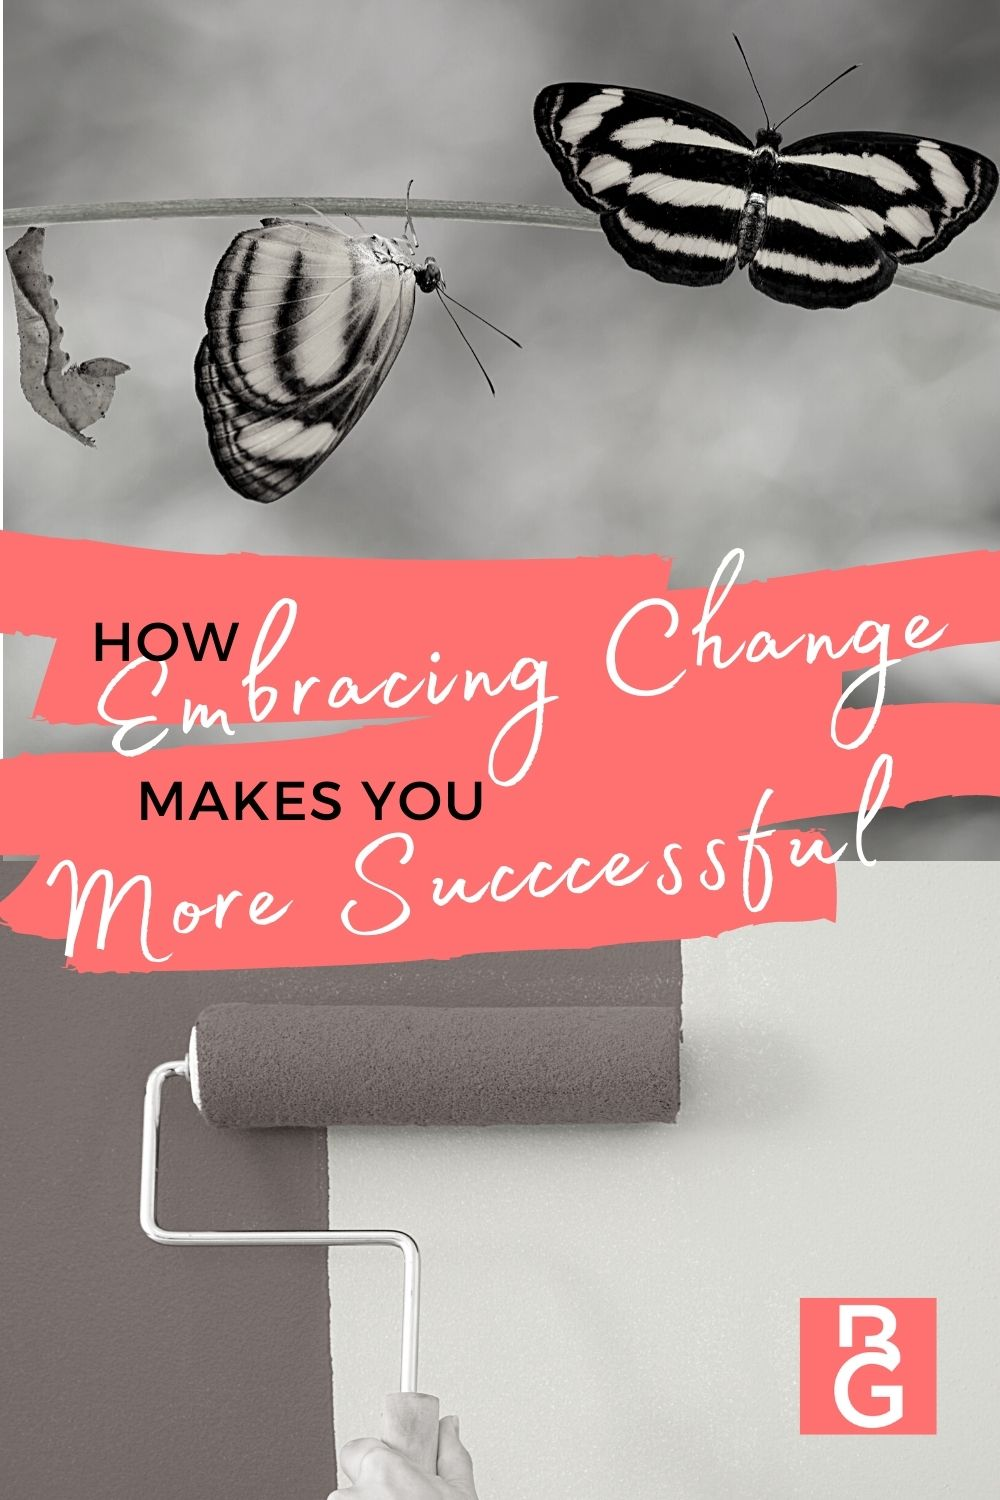 How Embracing Change Makes You More Successful. Image of caterpillar and butterflies.